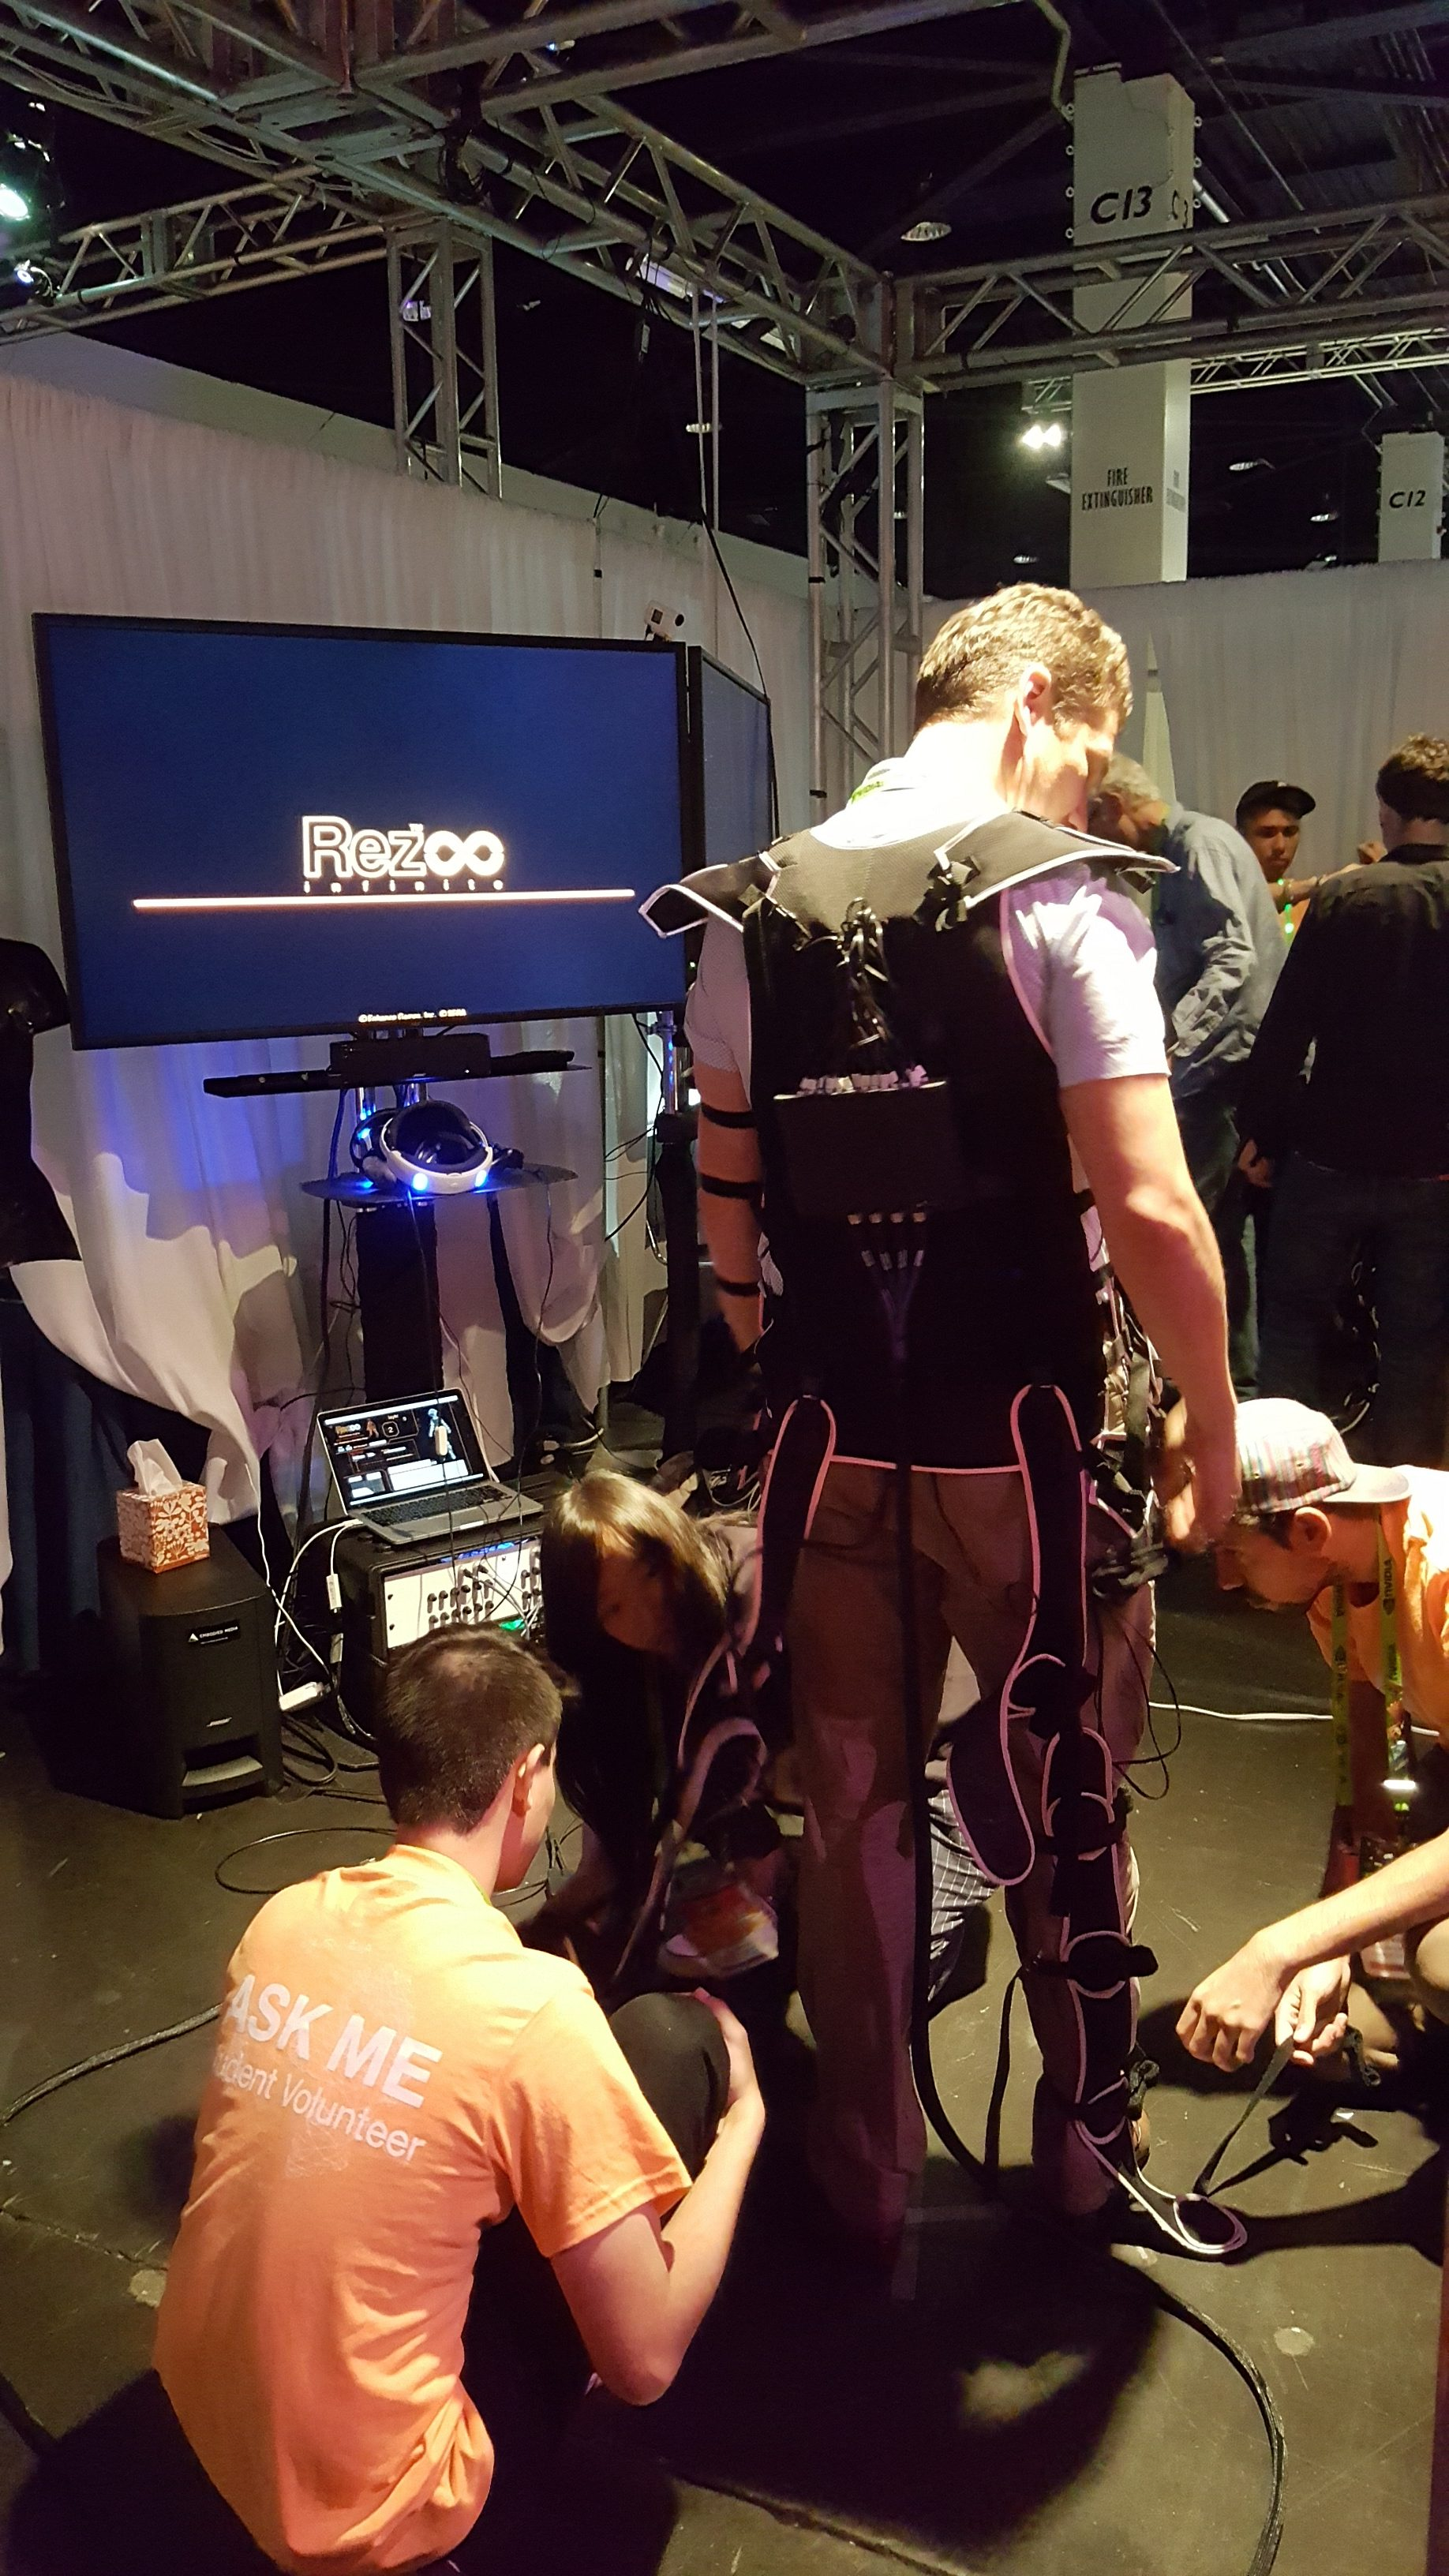 The Embodied Media Project in Keio University Graduate School of Media Design brought Haptic body suits to help further the immersive experience of VR